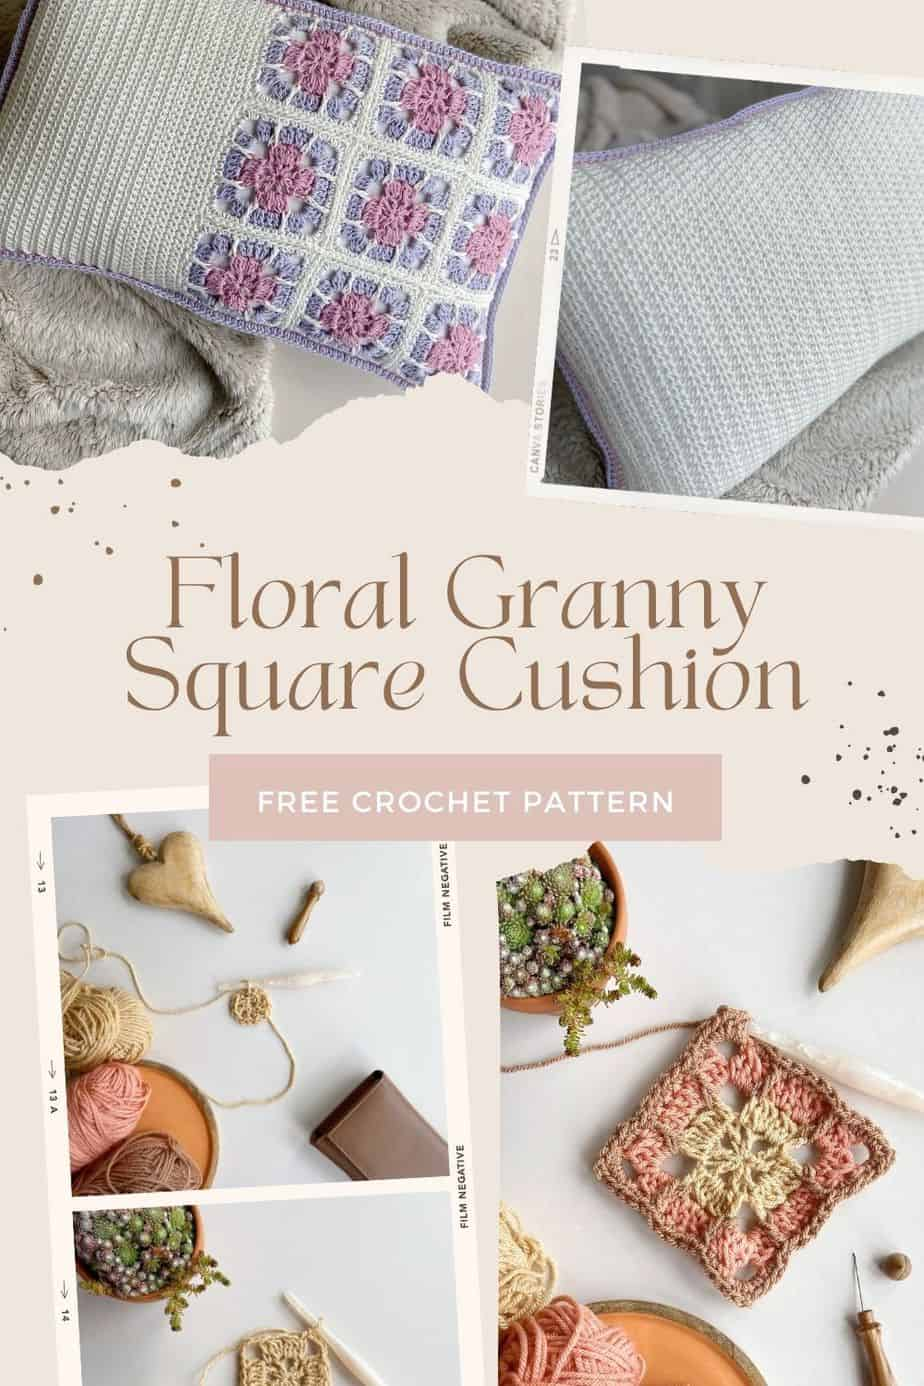 floral granny square cushion pattern tutorial images